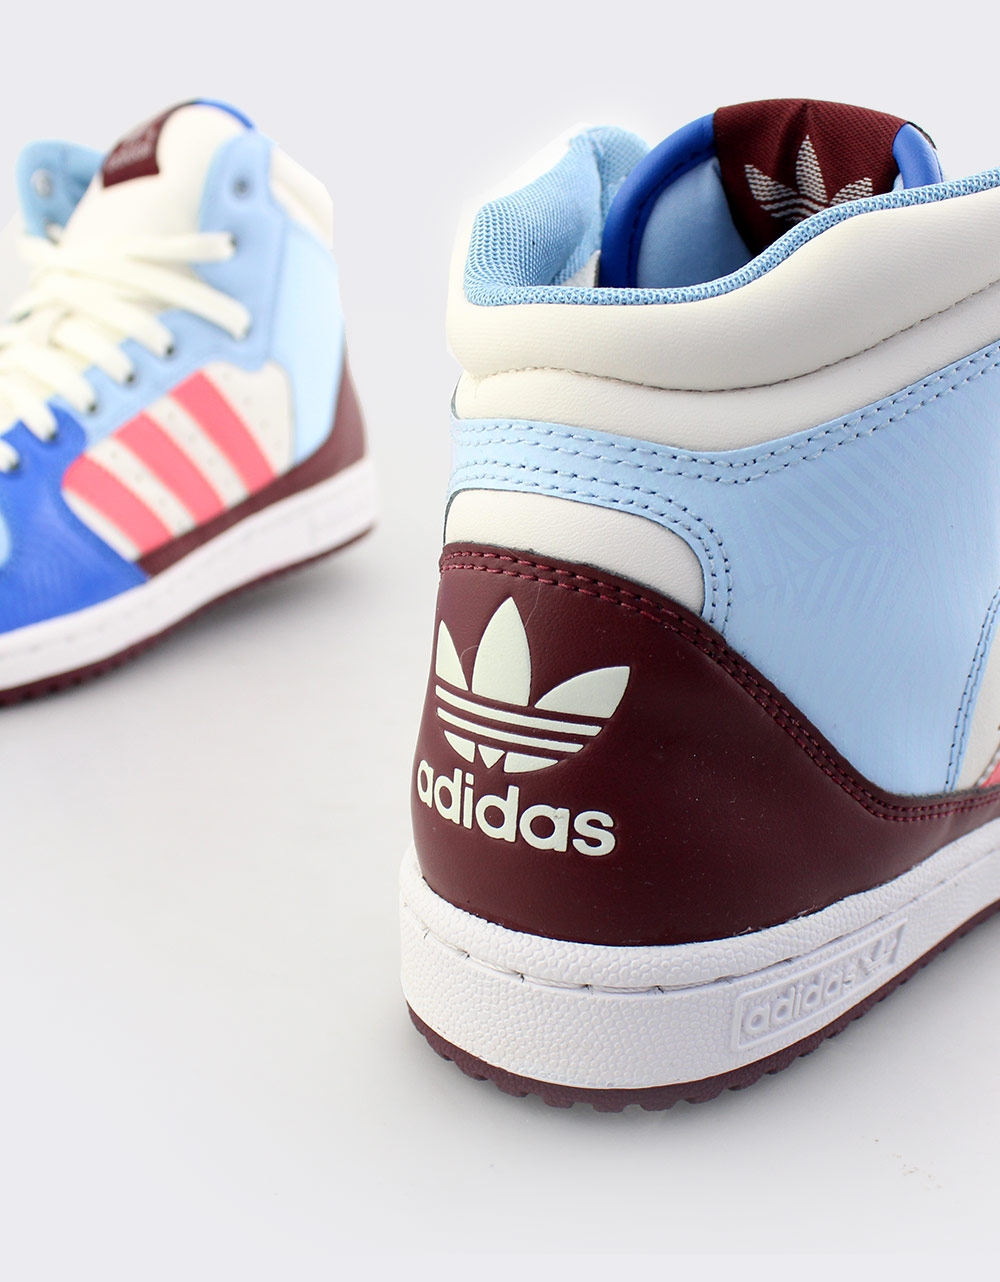 5695628133e Inshoes.gr. Γυναικεία sneakers Adidas Decade | Inshoes.gr Σιέλ